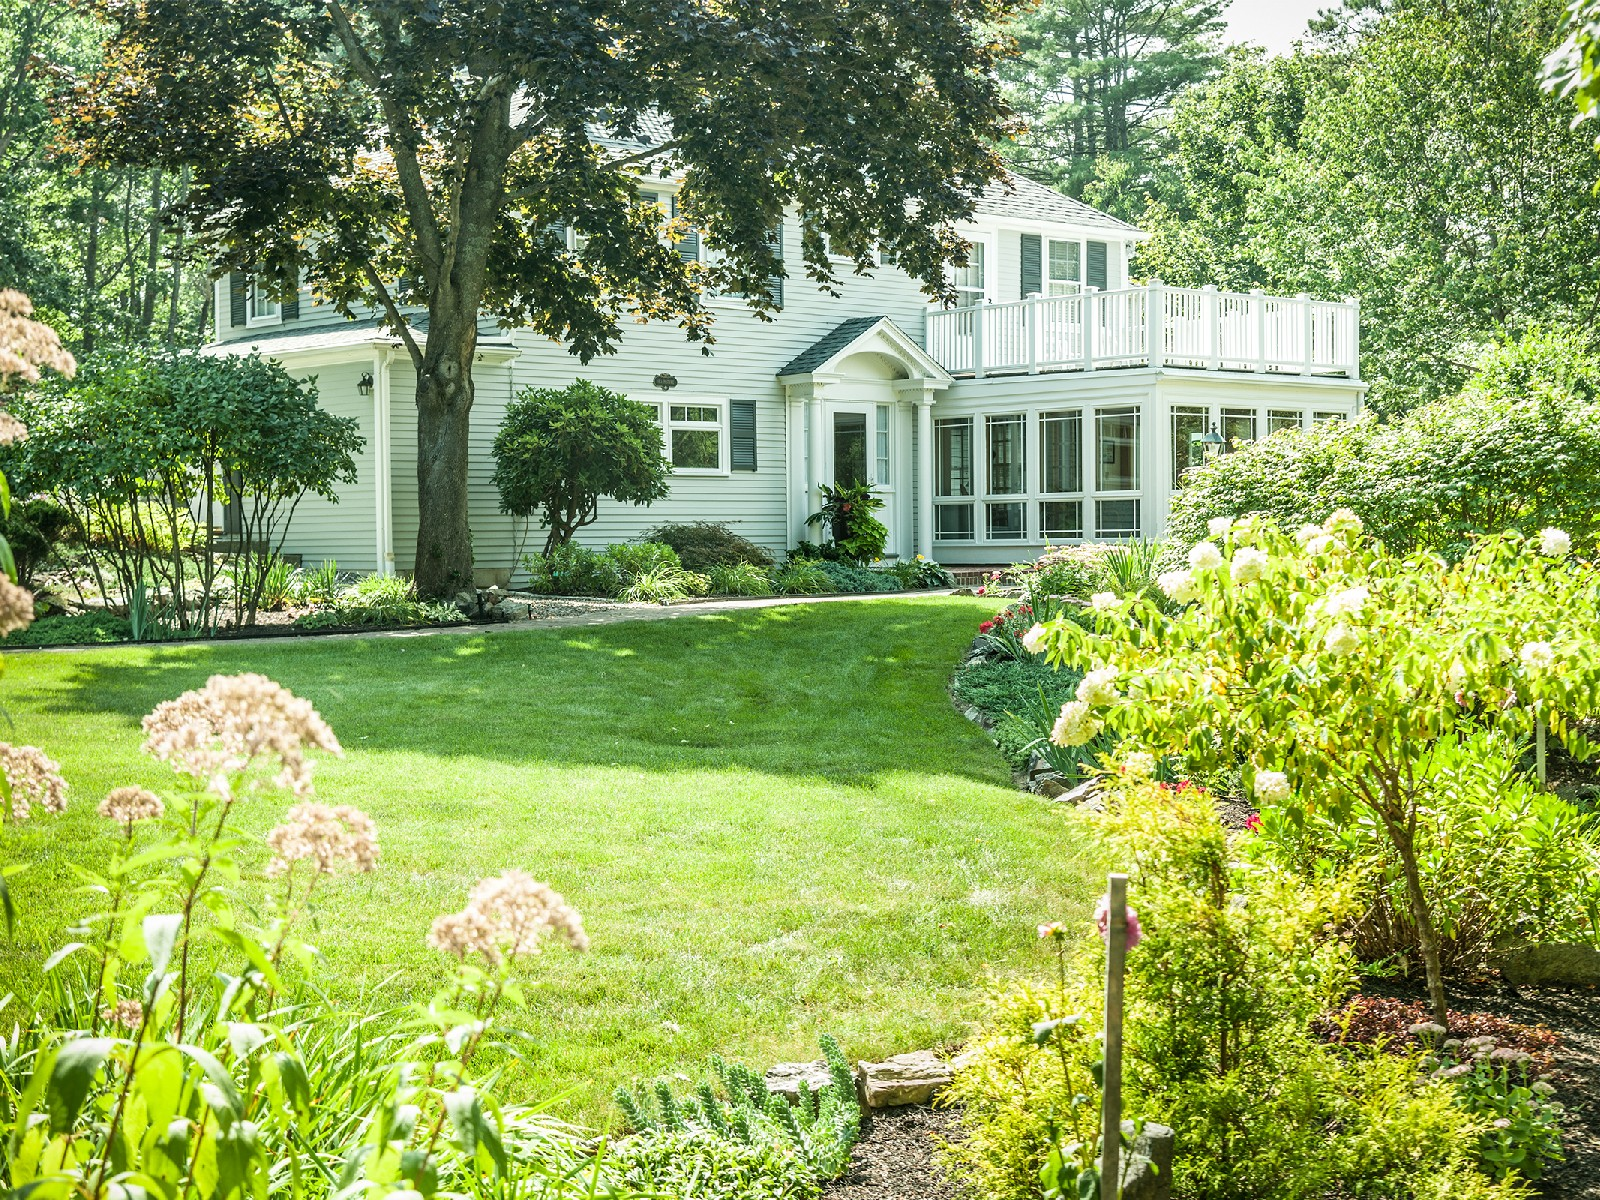 Property For Sale at Sea Pasture Colonial in Cape Neddick